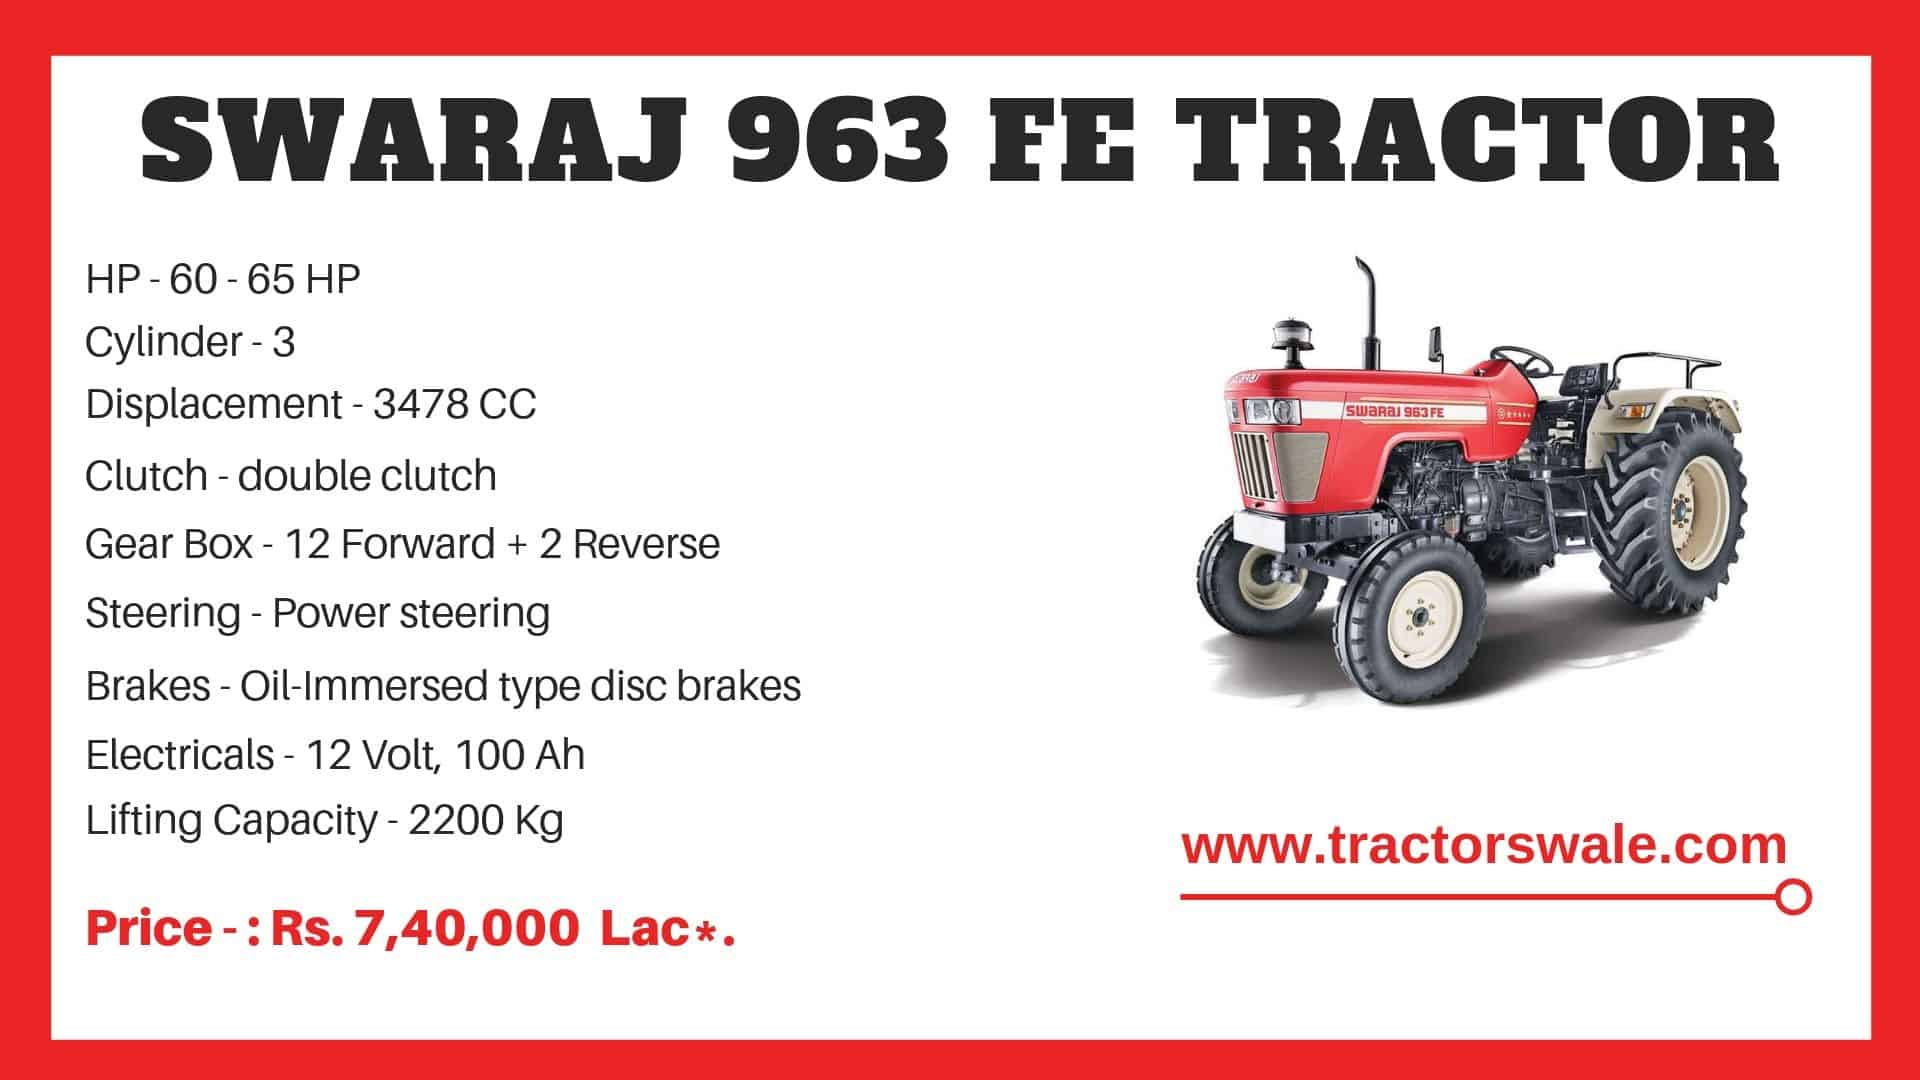 Specification of Swaraj 963 FE Tractor